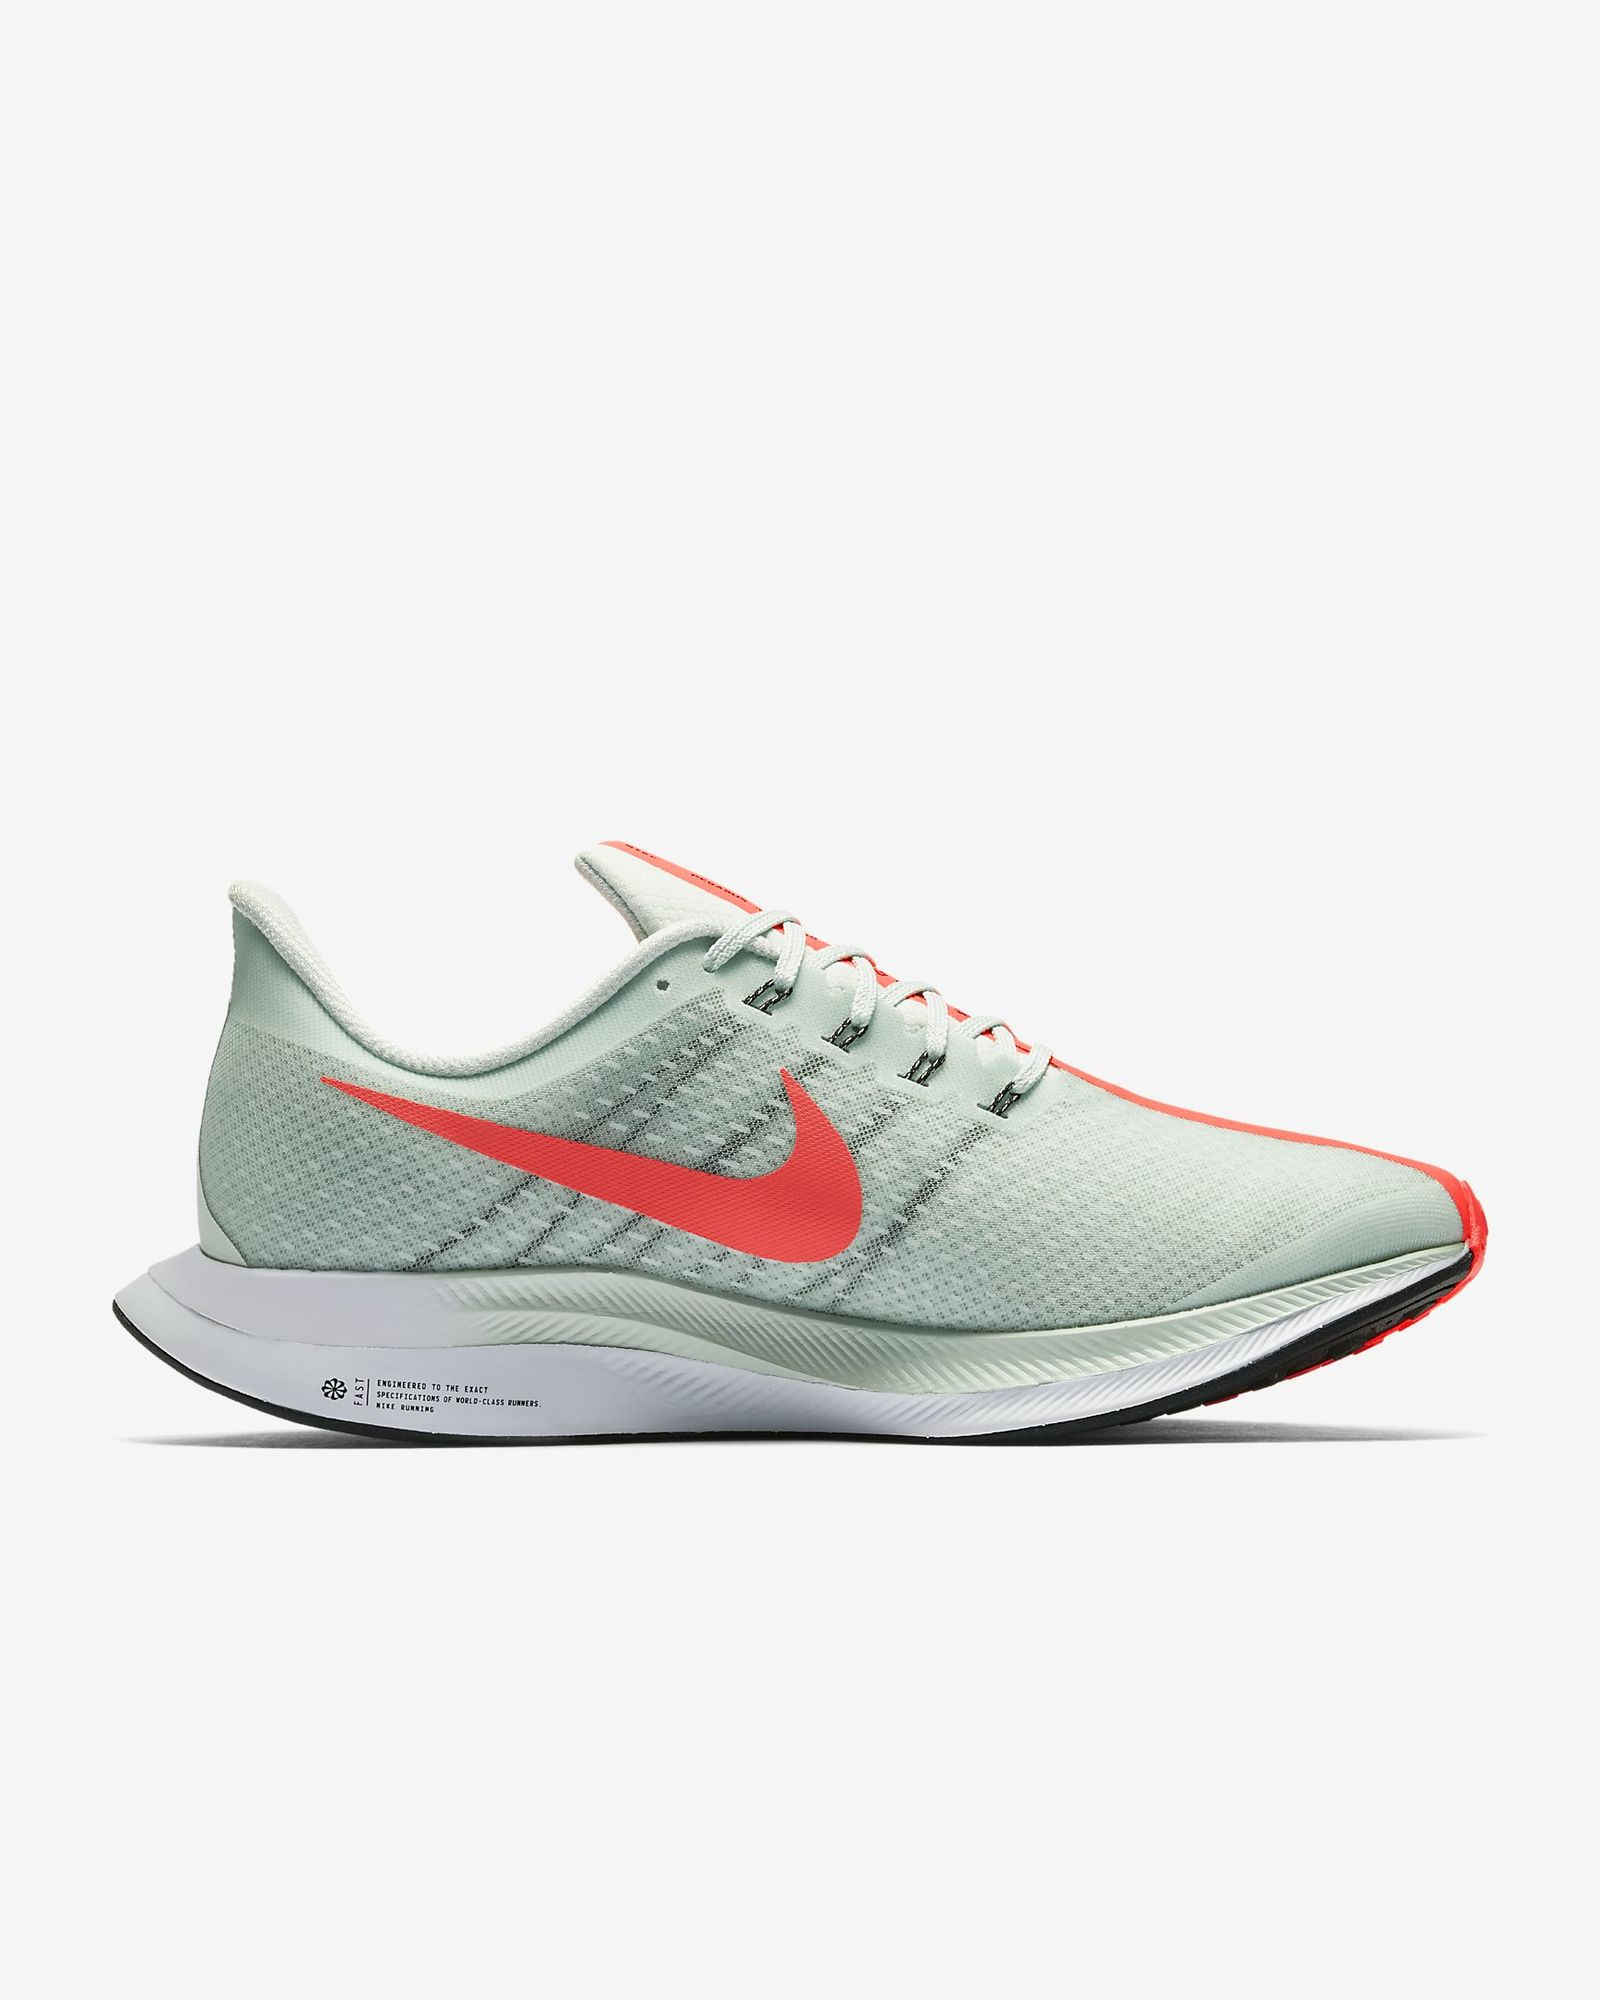 92f03a3442451 ... official store nike zoom pegasus turbo in grau rot ad503 bd4f3